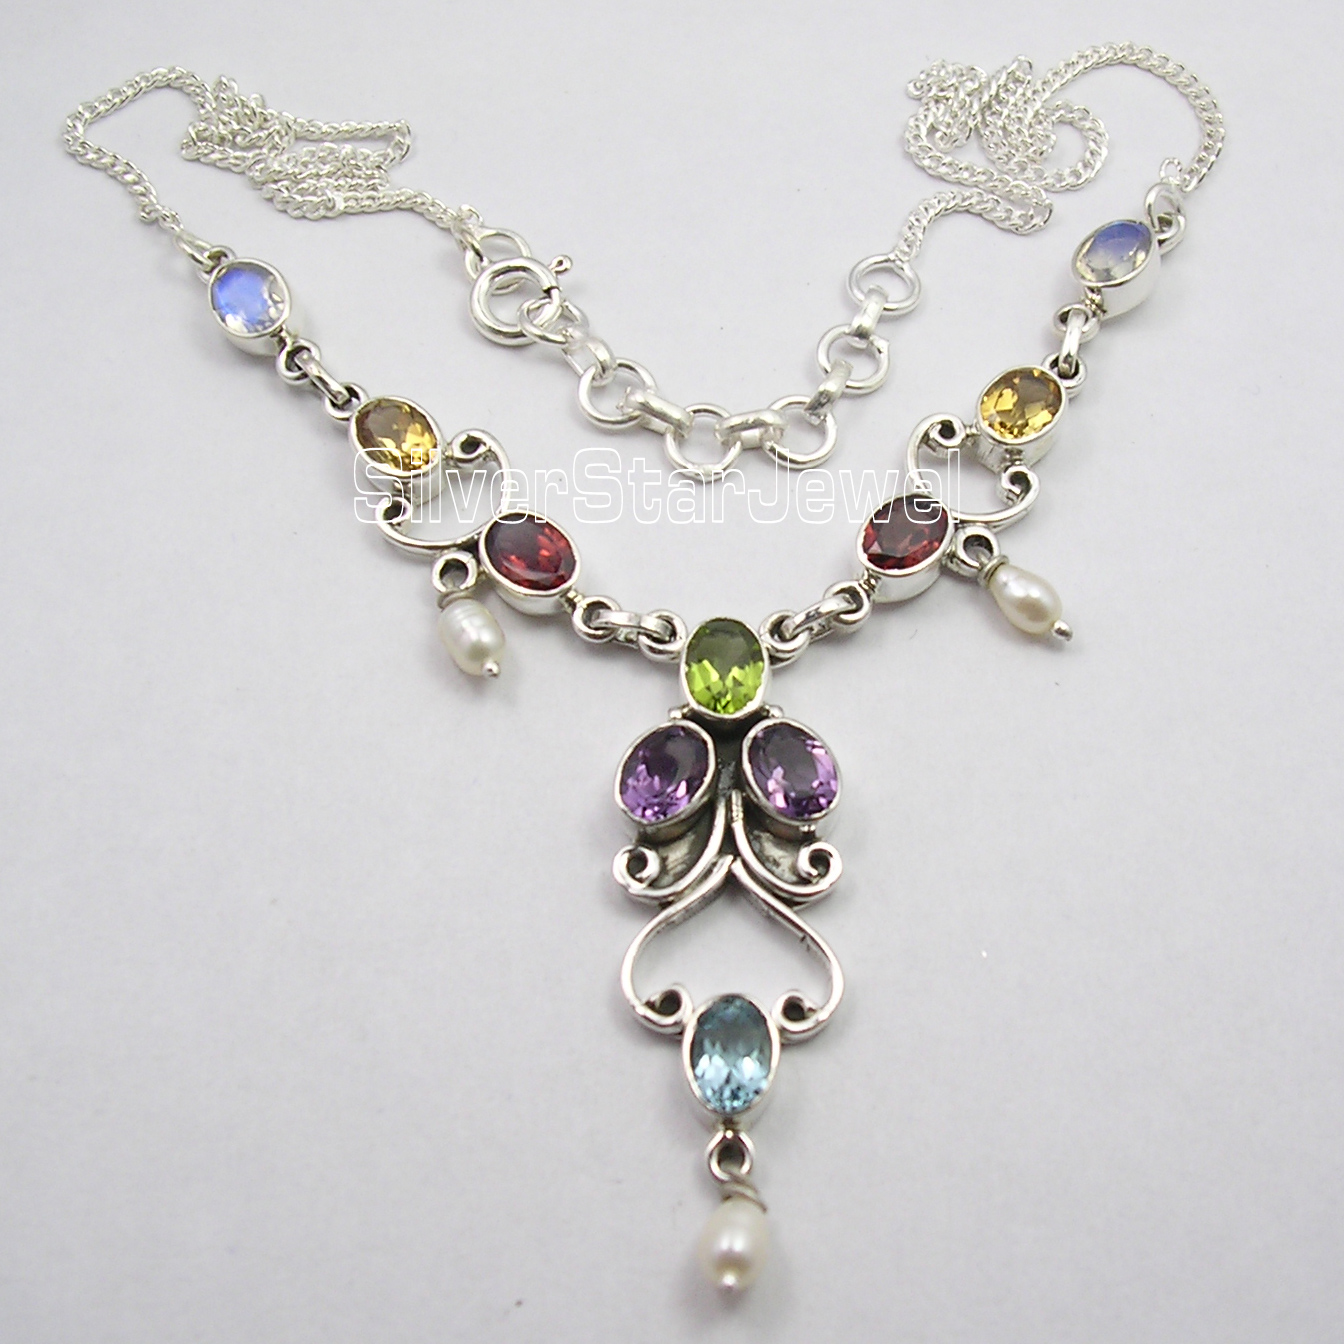 Chanti International Silver Authentic MULTISTONES HANDCRAFTED Necklace 17 5/8